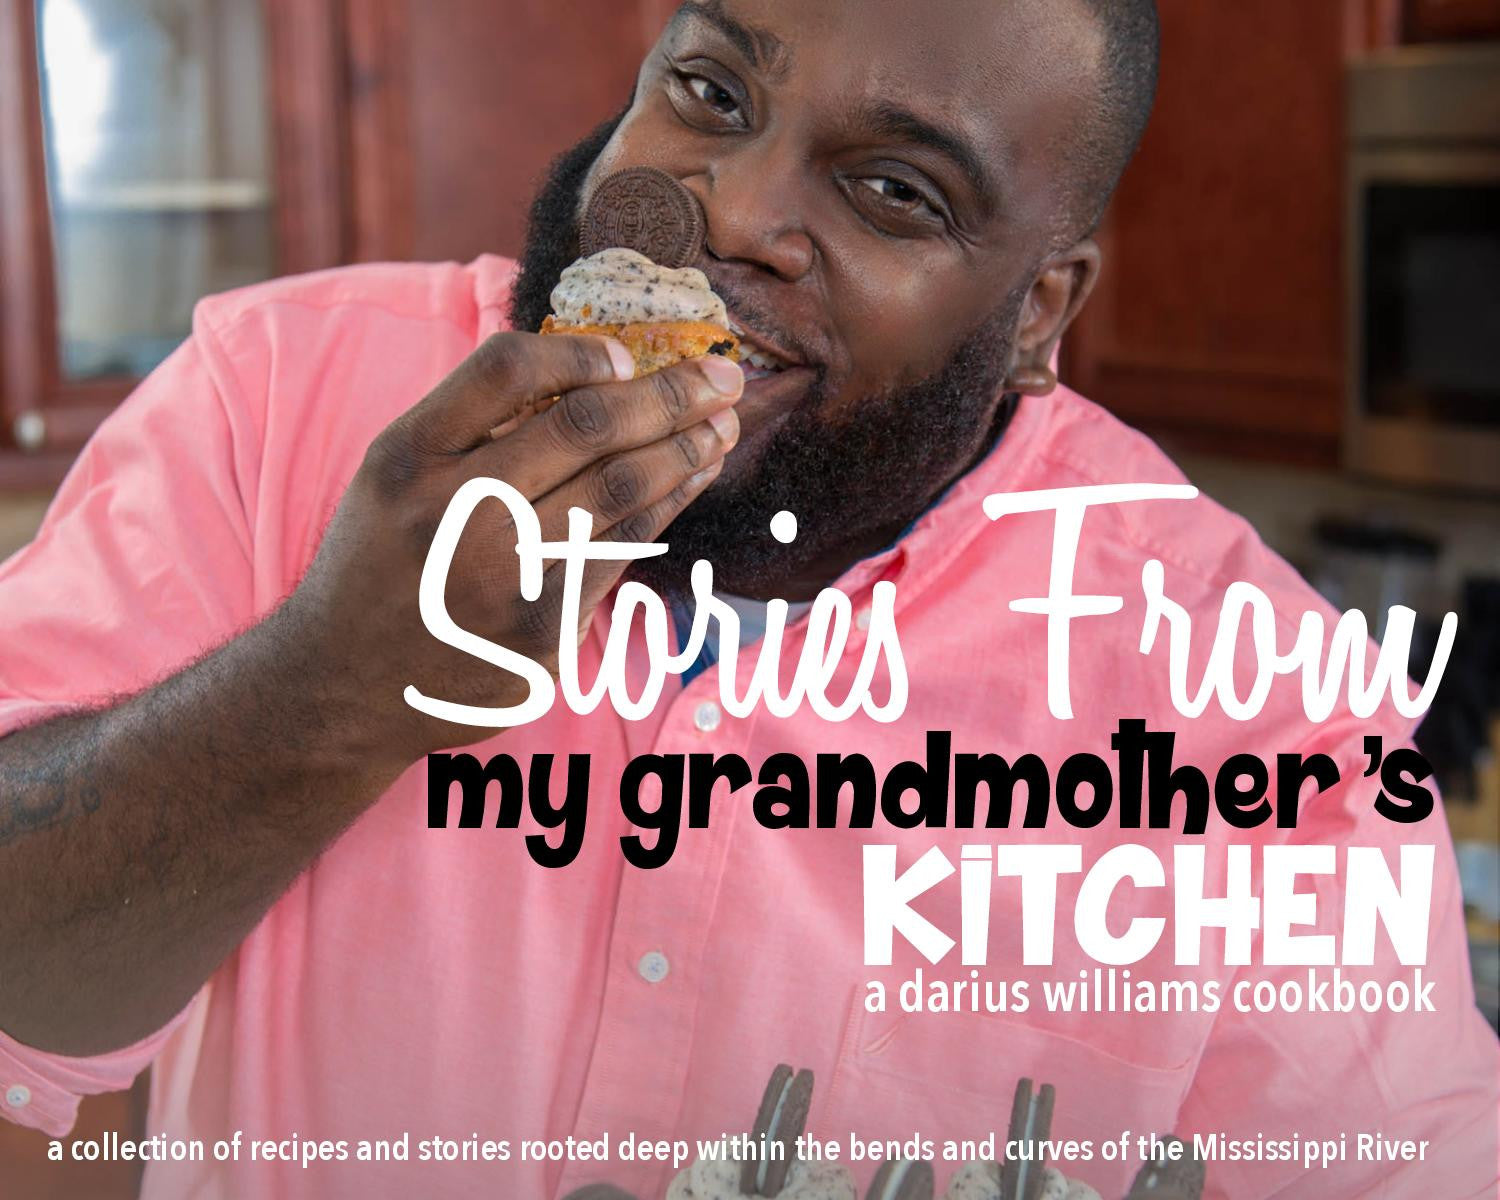 PREORDER - Ships 9/30/20! Stories from My Grandmother's Kitchen Cookbook